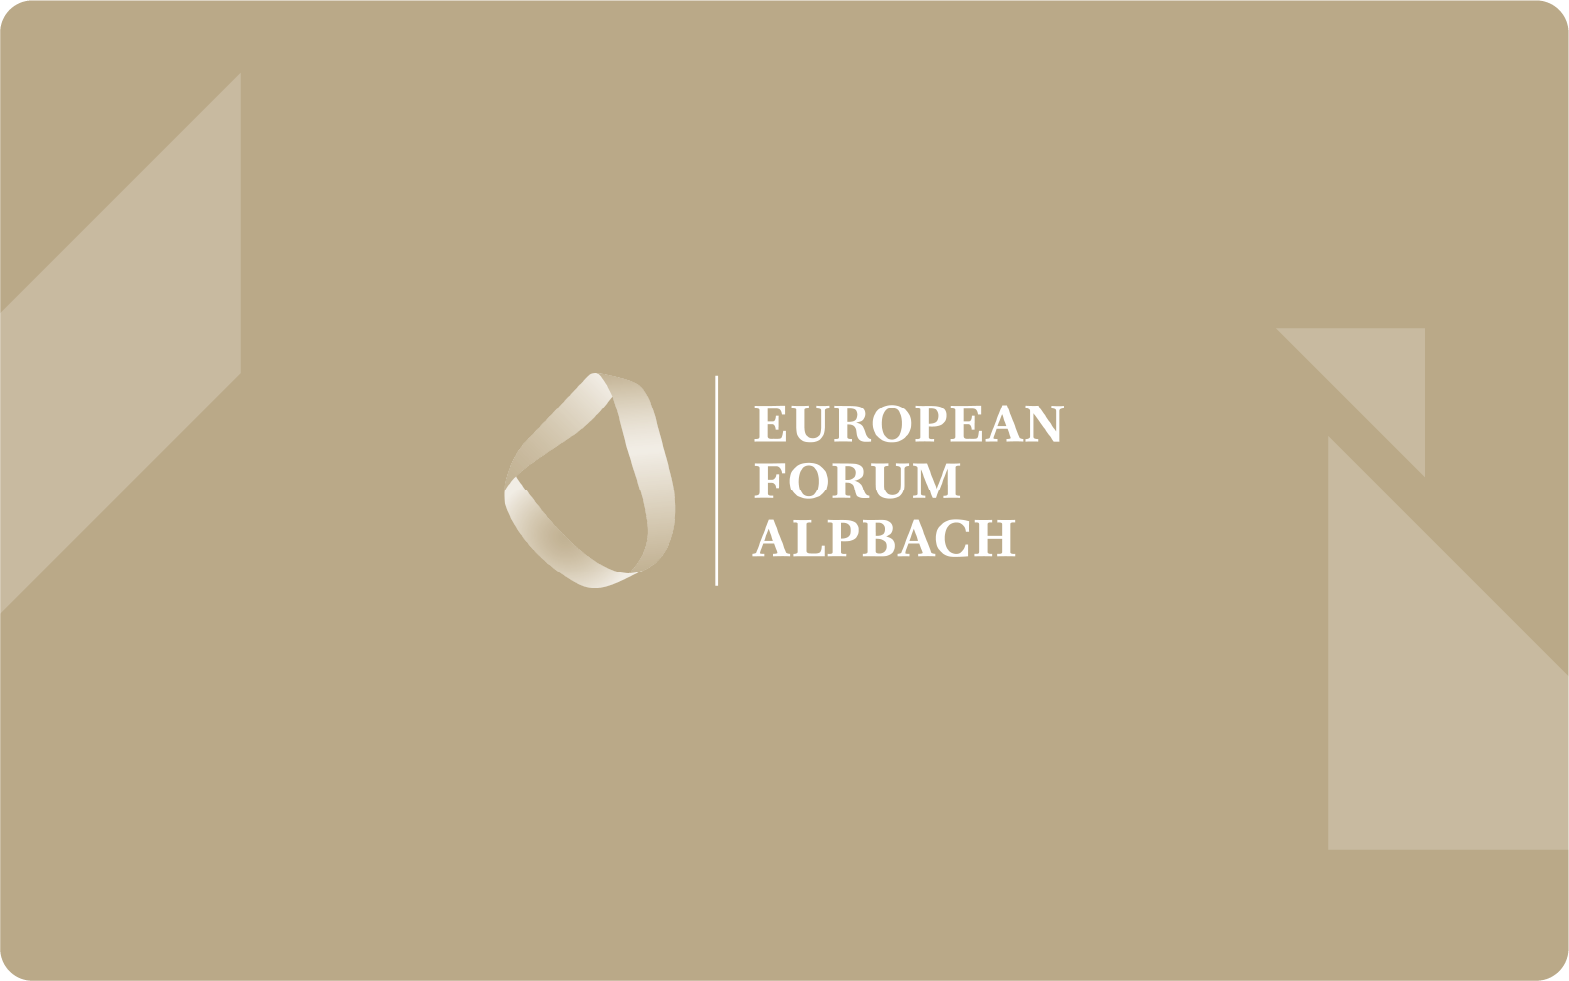 Meet European Forum Alpbach, an international socio-political forum that went virtual for the first time in its 75-year history using Hopin